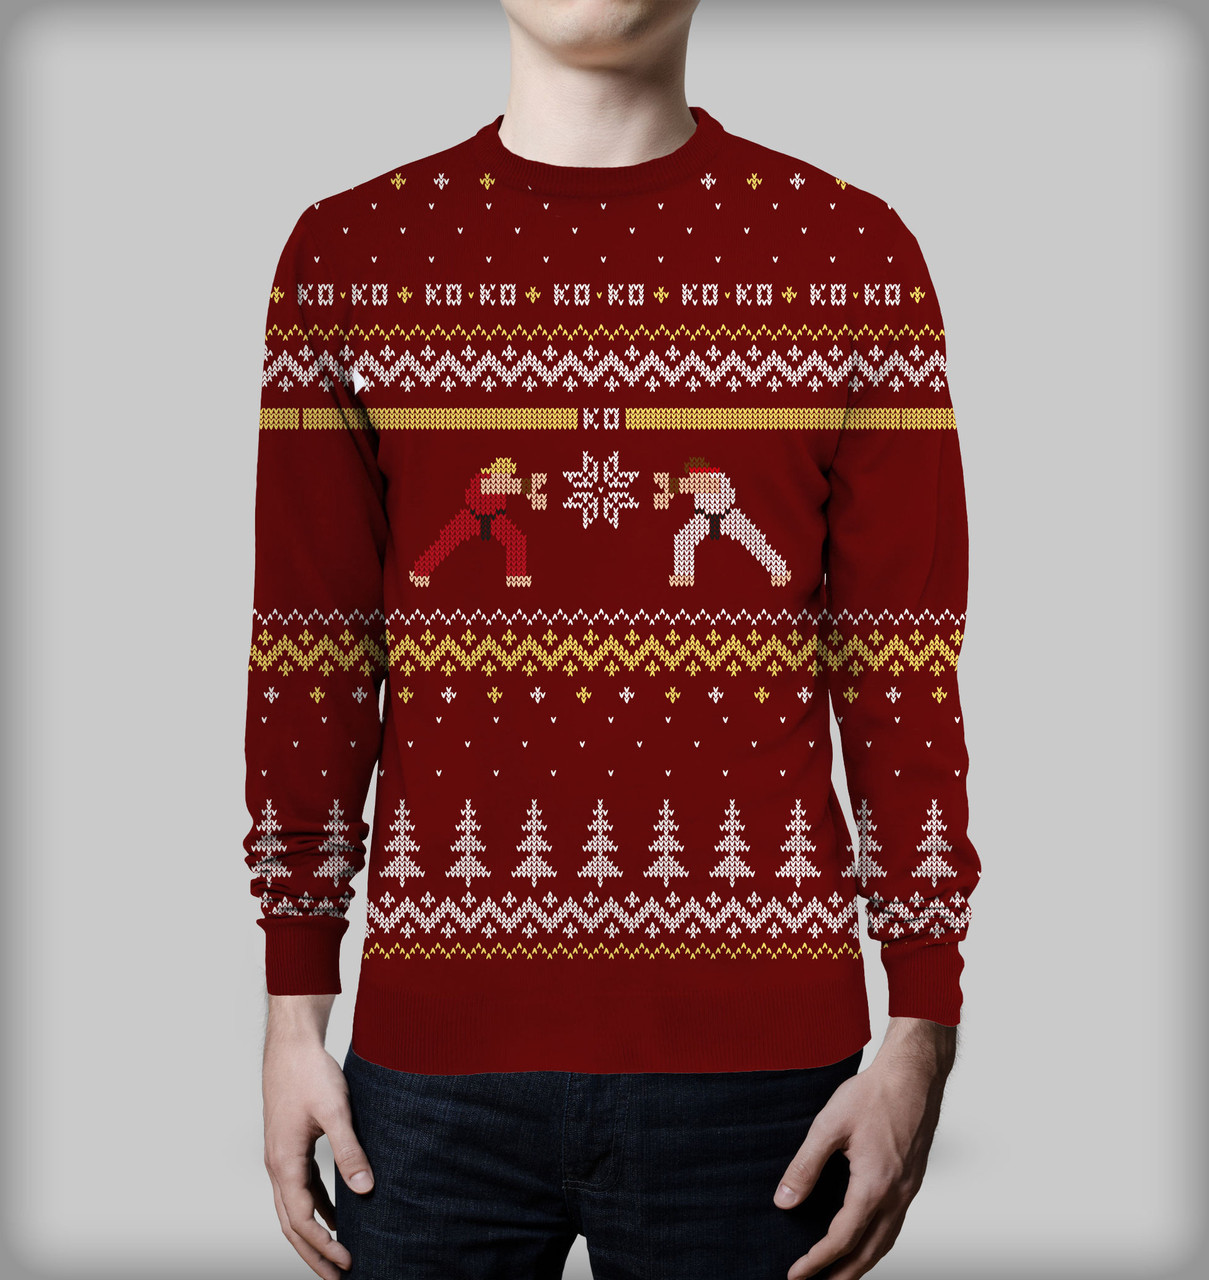 Top Ten Holiday Nerdy Sweaters, plus Ugly Sweater Event! - Nerd ...